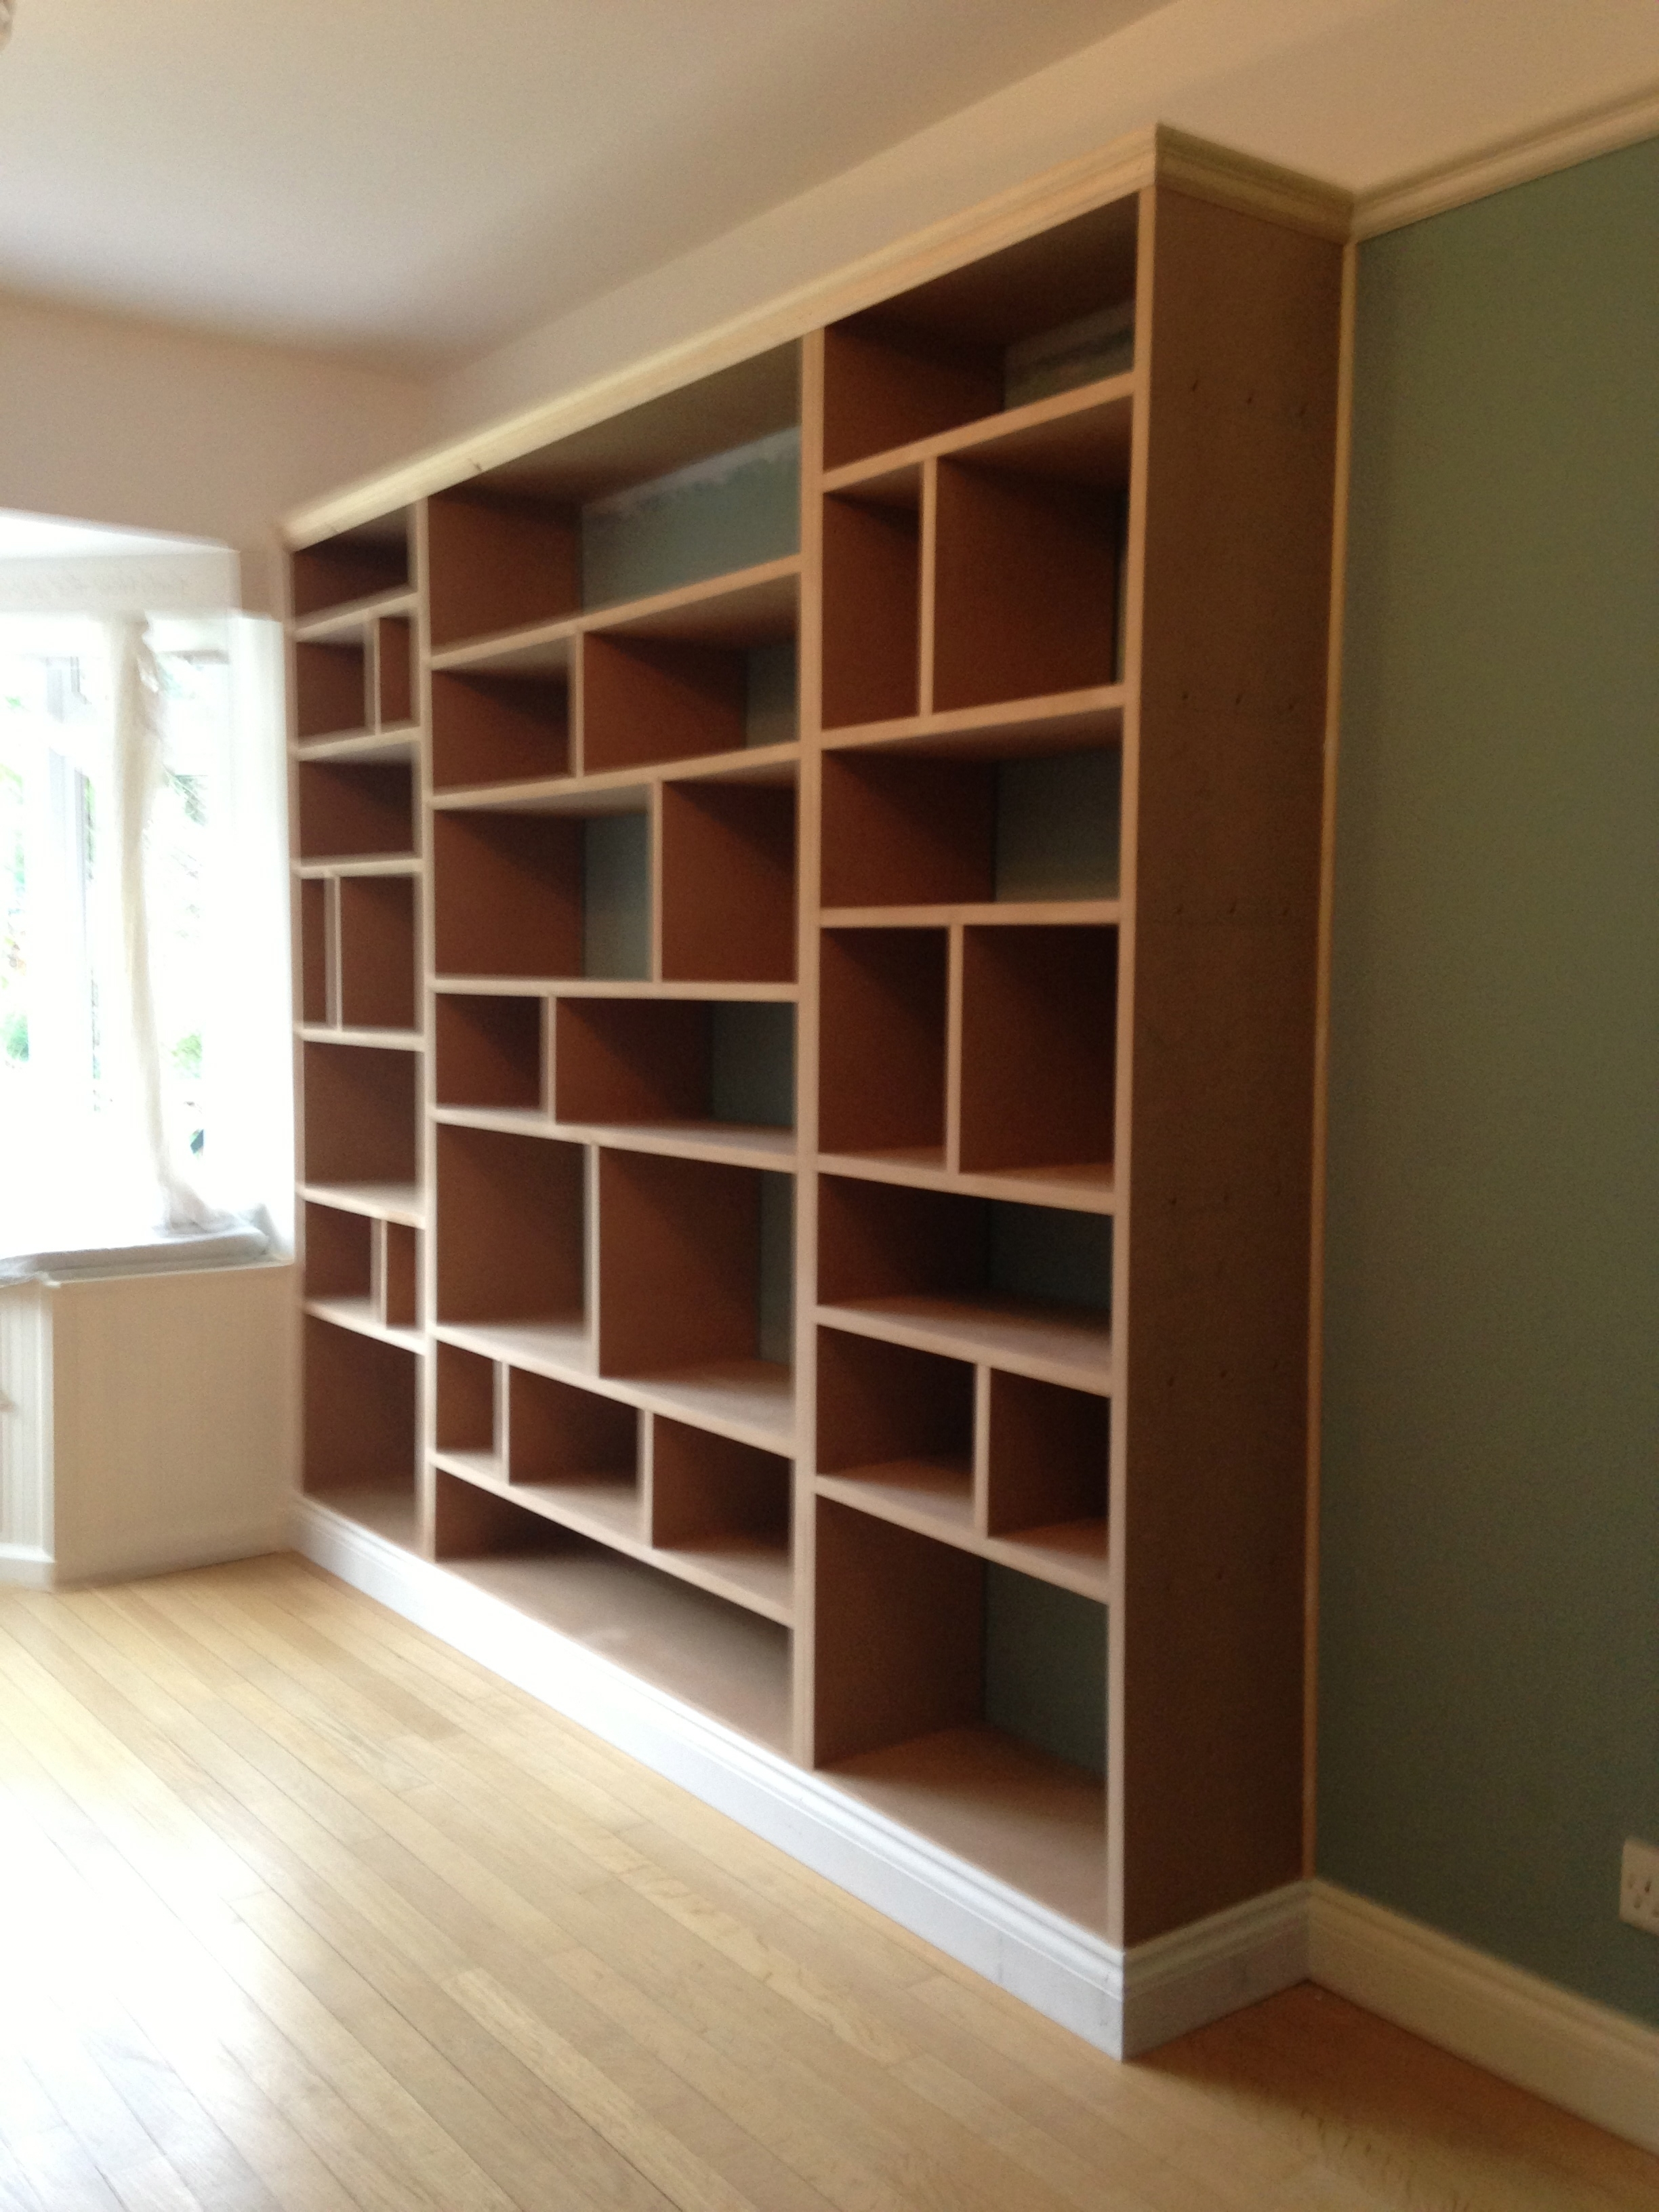 Preferred Fitted Bookcases With Fitted Shelving, Cupboards And Flooring – P D Carpentry & Building (View 11 of 15)